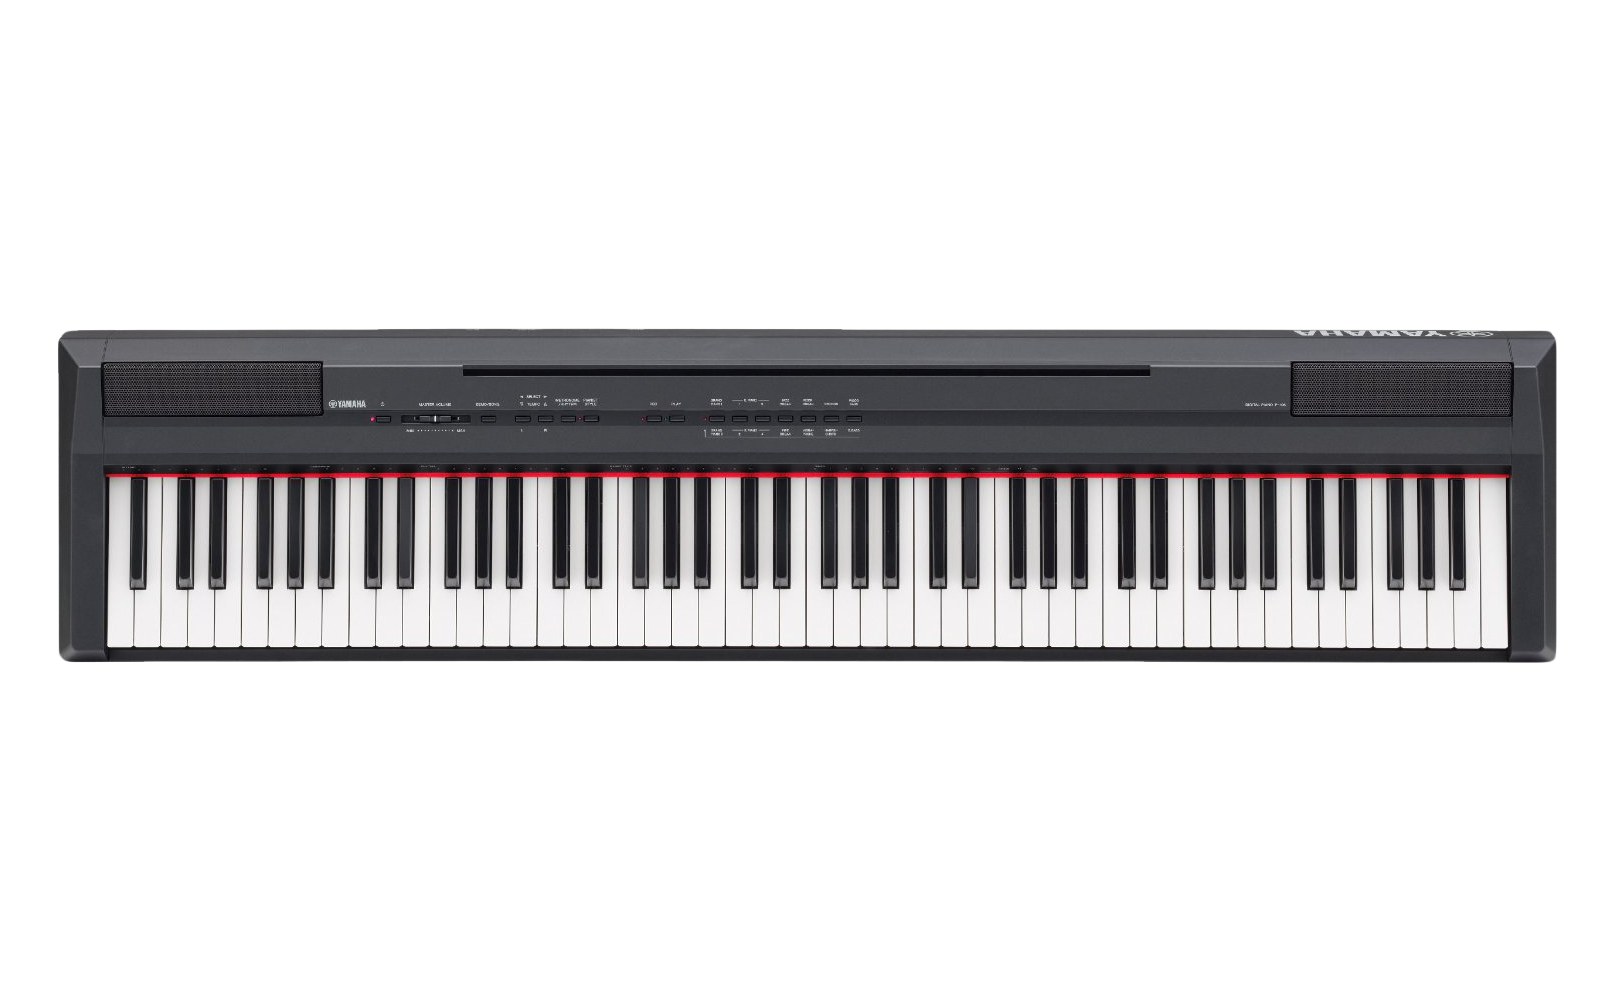 piano png transparent image pngpix 24430